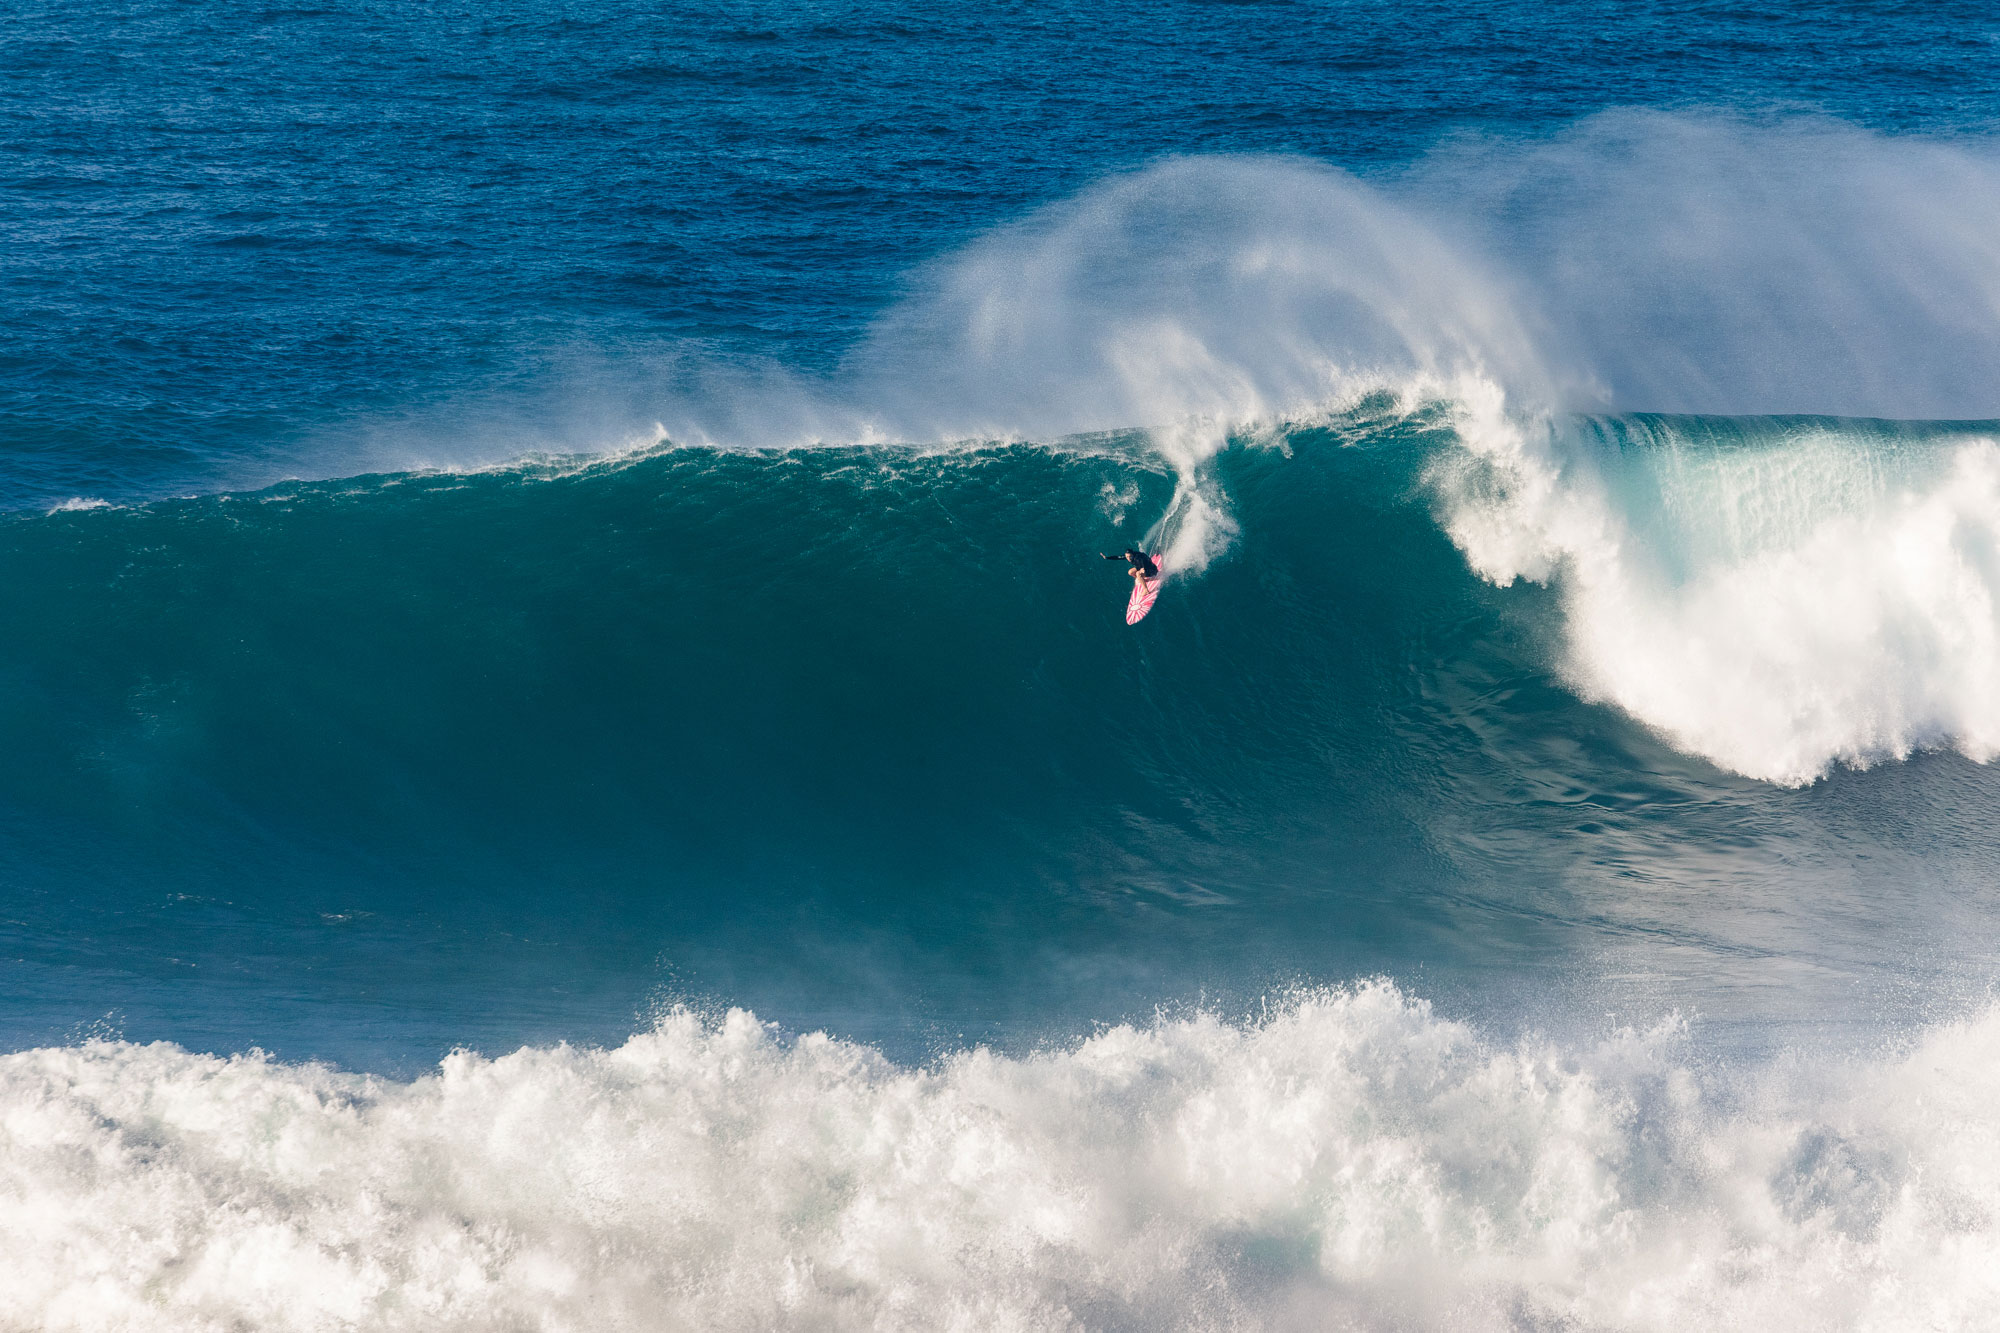 Bianca Valenti, on the massive wave she scored at Jaws